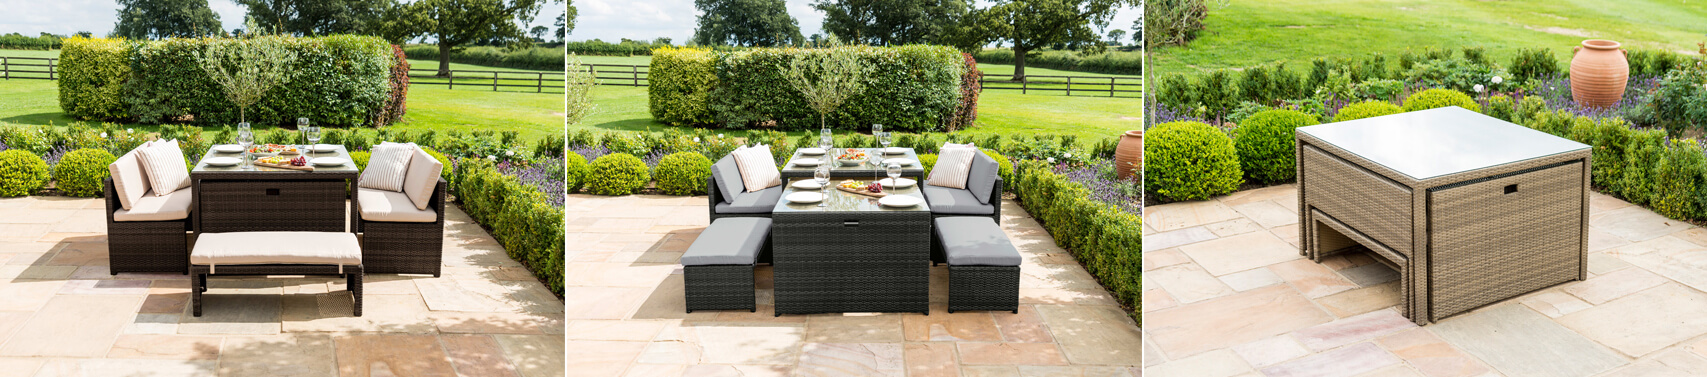 mbimages/m/a/maze_rattan_lyon_garden_furniture_set.jpg